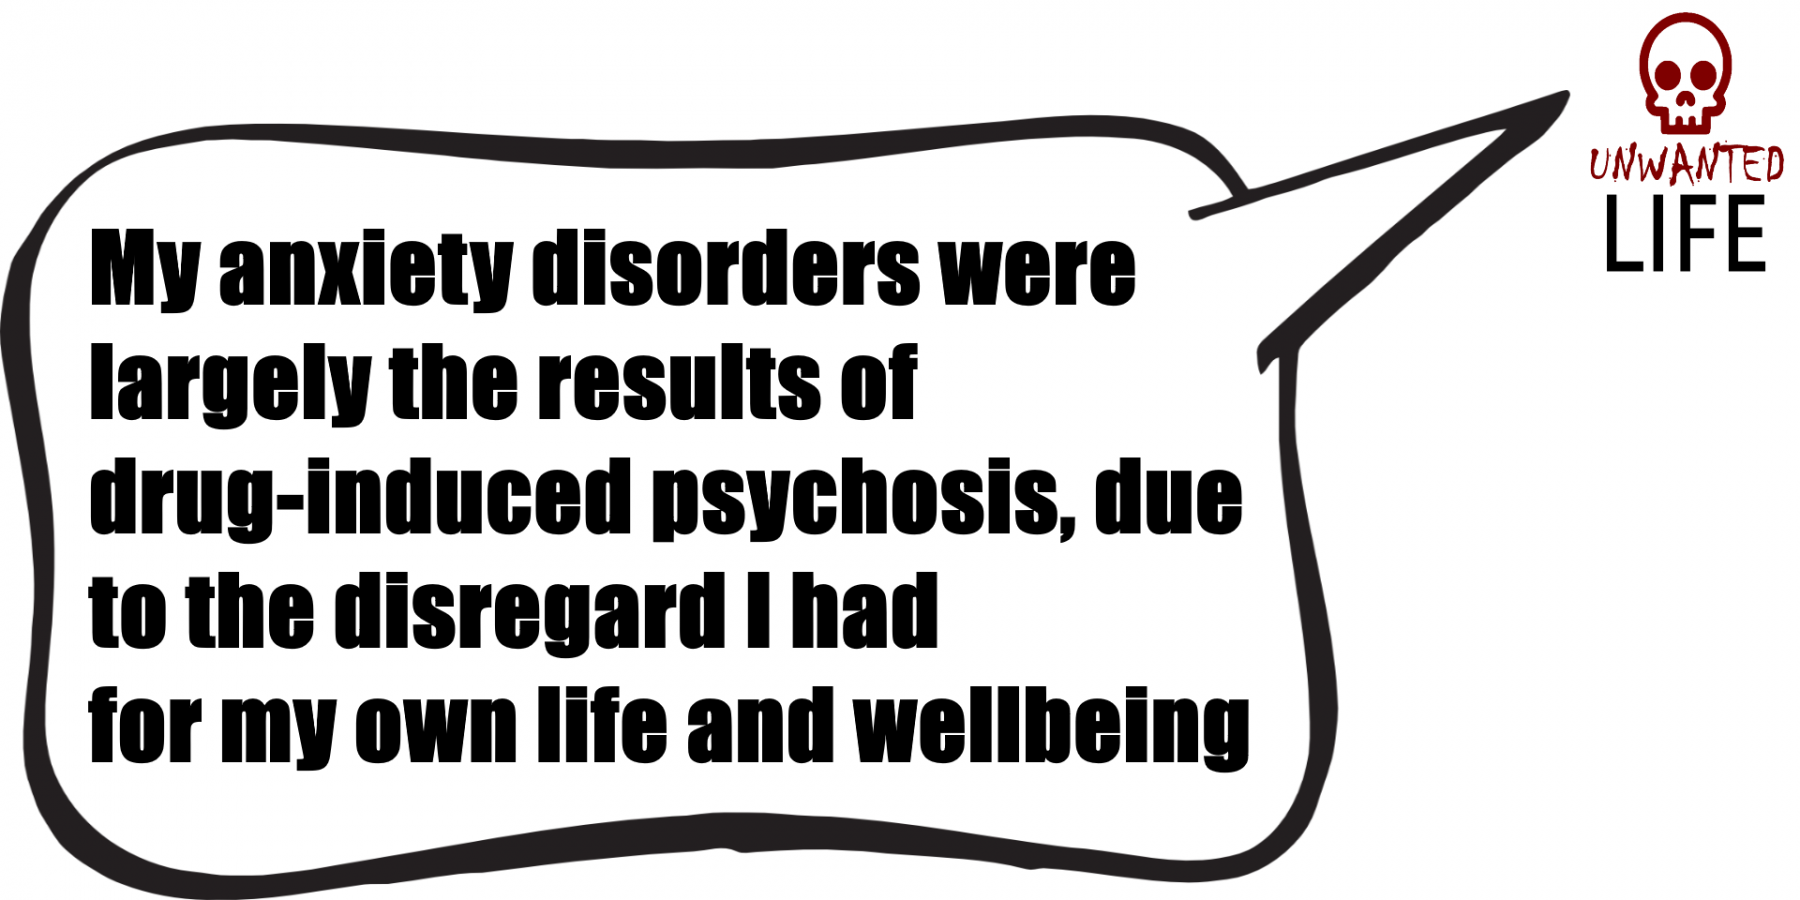 A Quote from the blog Unwanted Life's article - The Unusual Link Between Drug-Induced Psychosis And My Anxieties 1